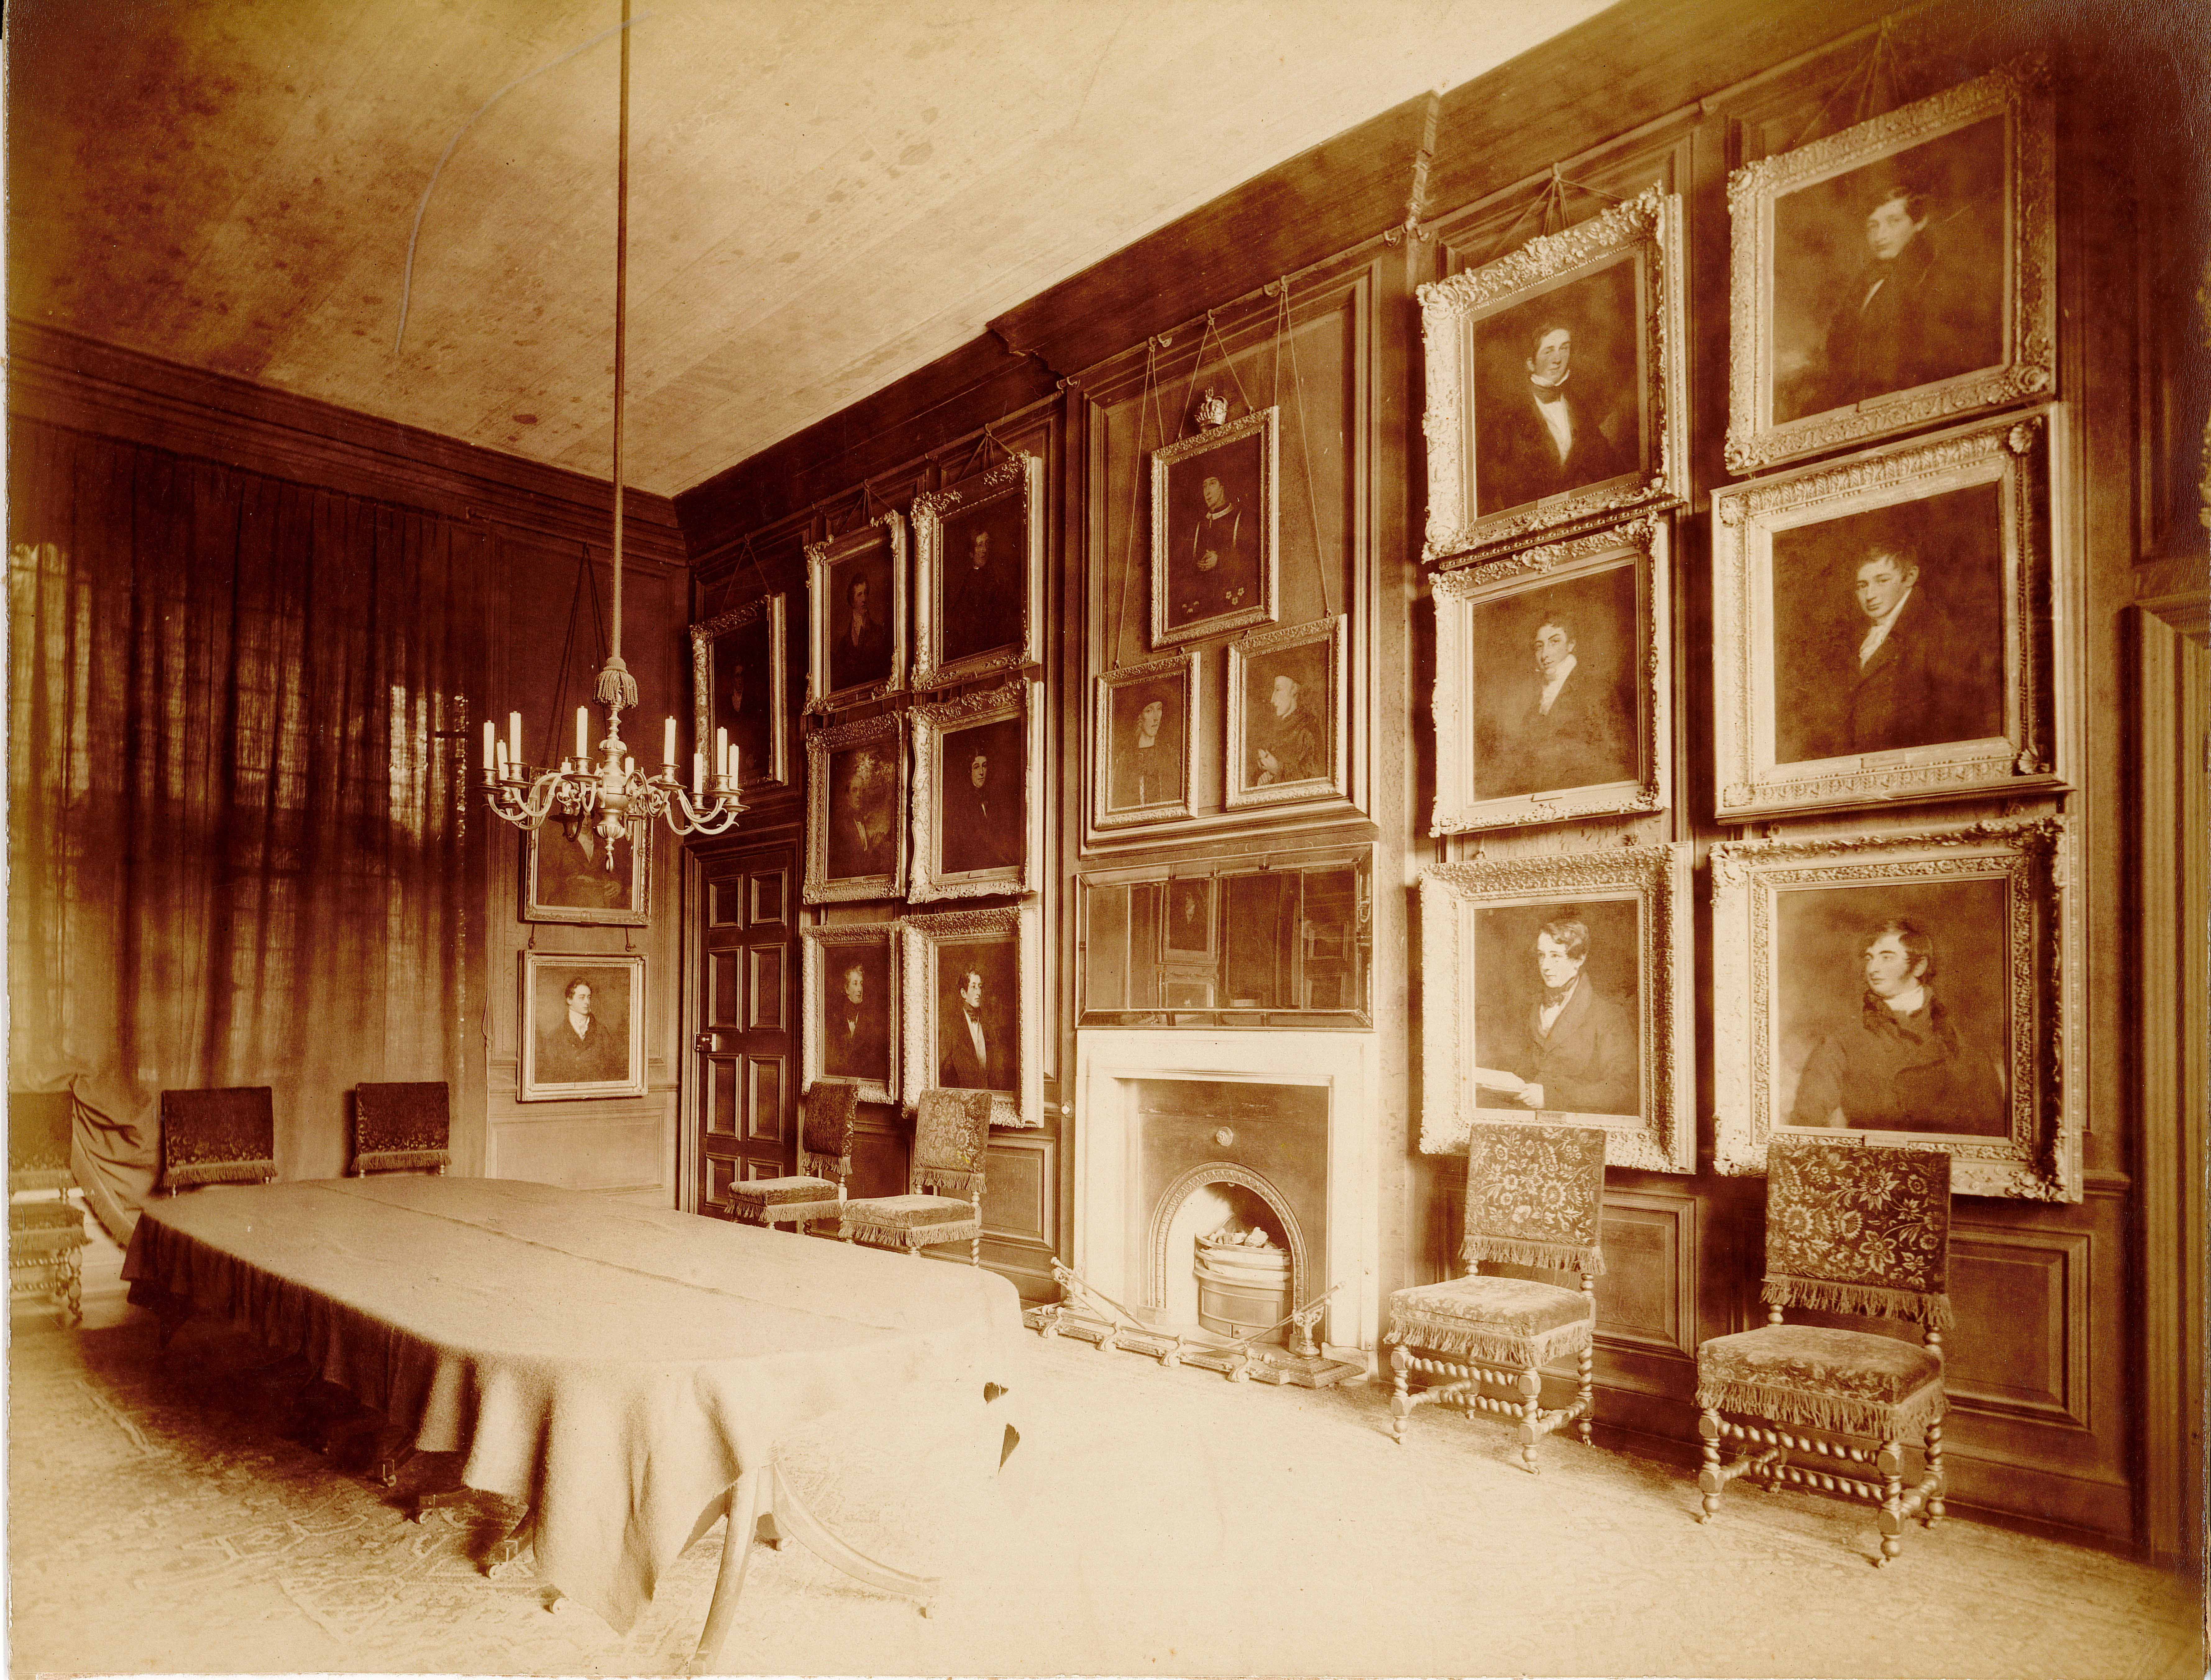 Election Chamber, Eton College, 1870s. Reproduced by permission of the Provost and Fellows of Eton College